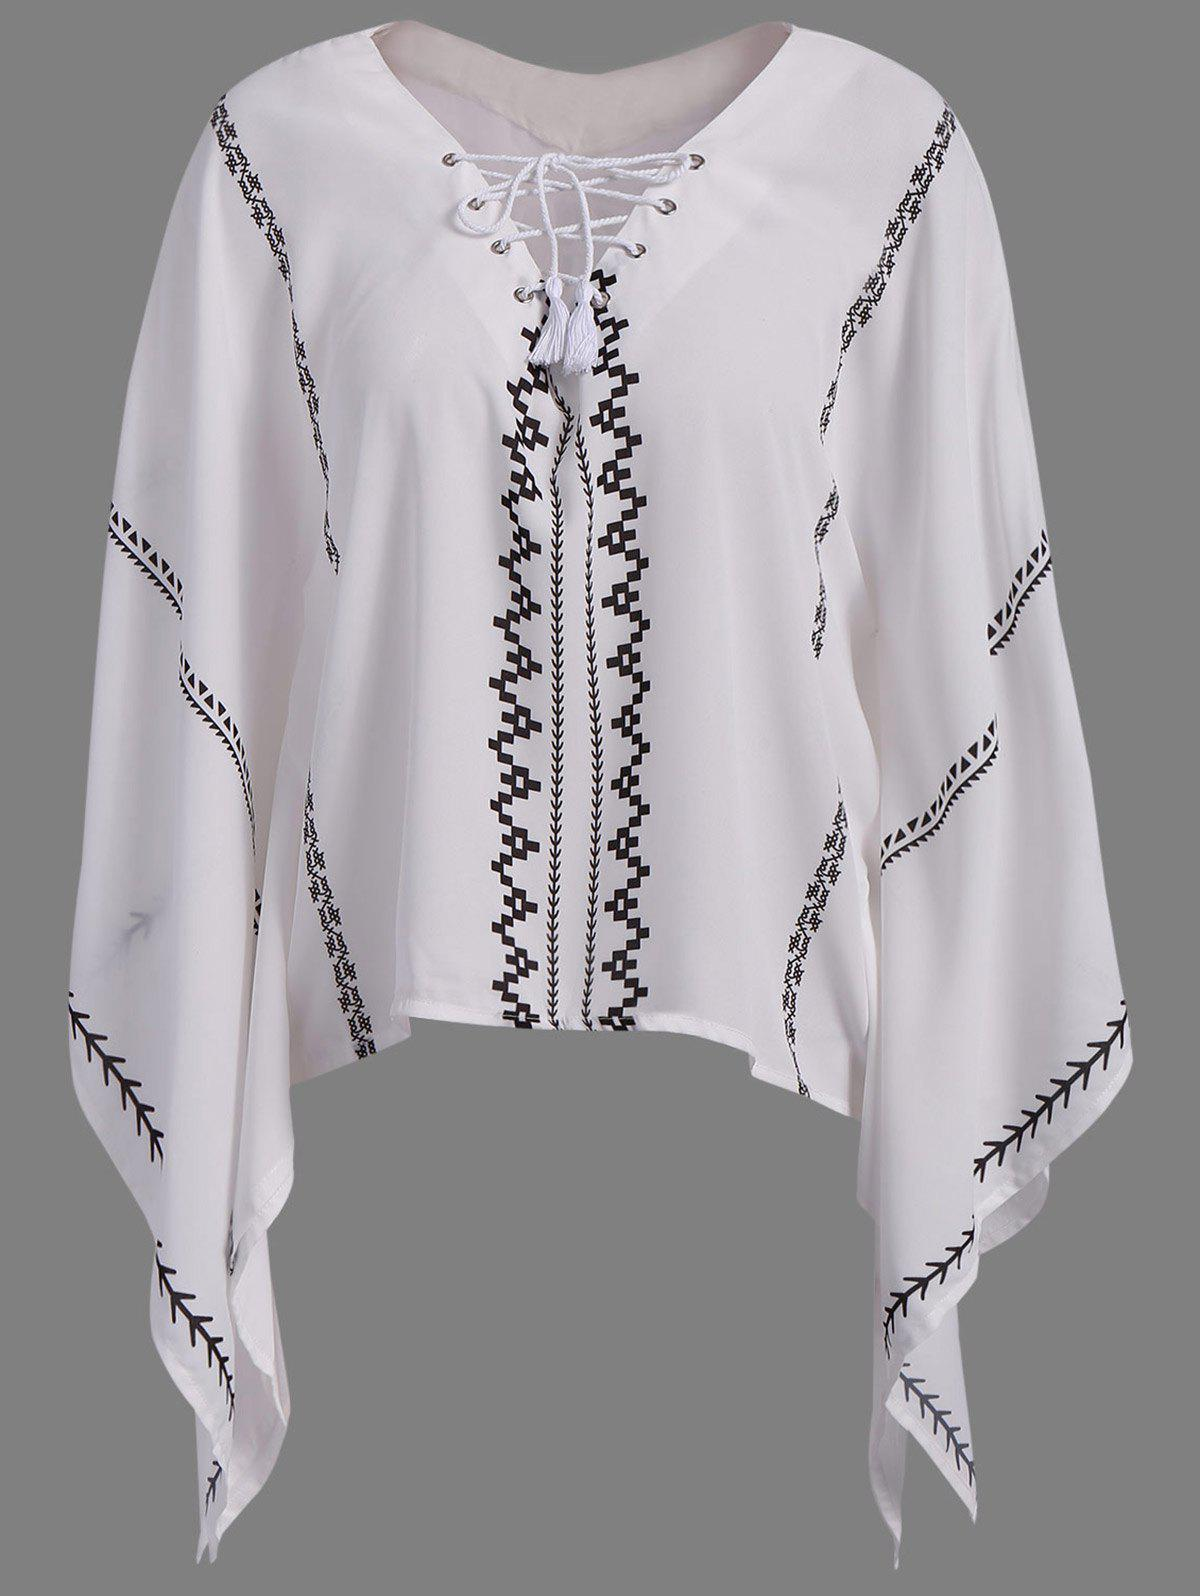 Retro Style V Neck Batwing Sleeve Asymmetrical Chiffon Lace-Up Women's Blouse - WHITE S